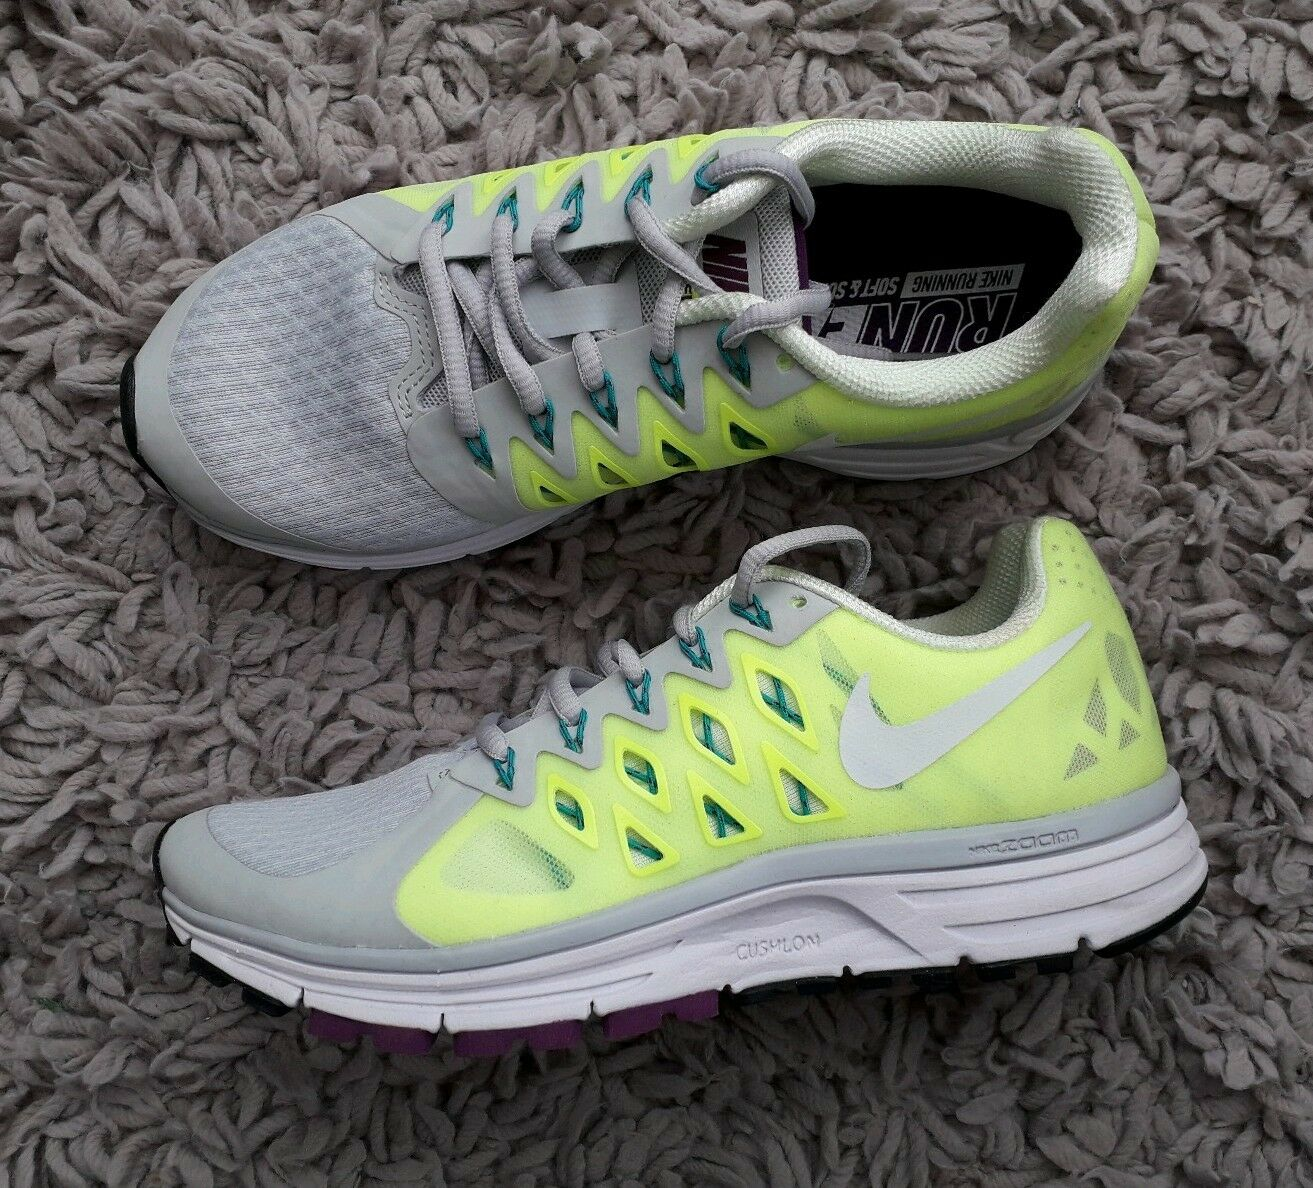 Air Femme Vomero Filles Nike Baskets Zoom 9 Chaussures zXxpCwd